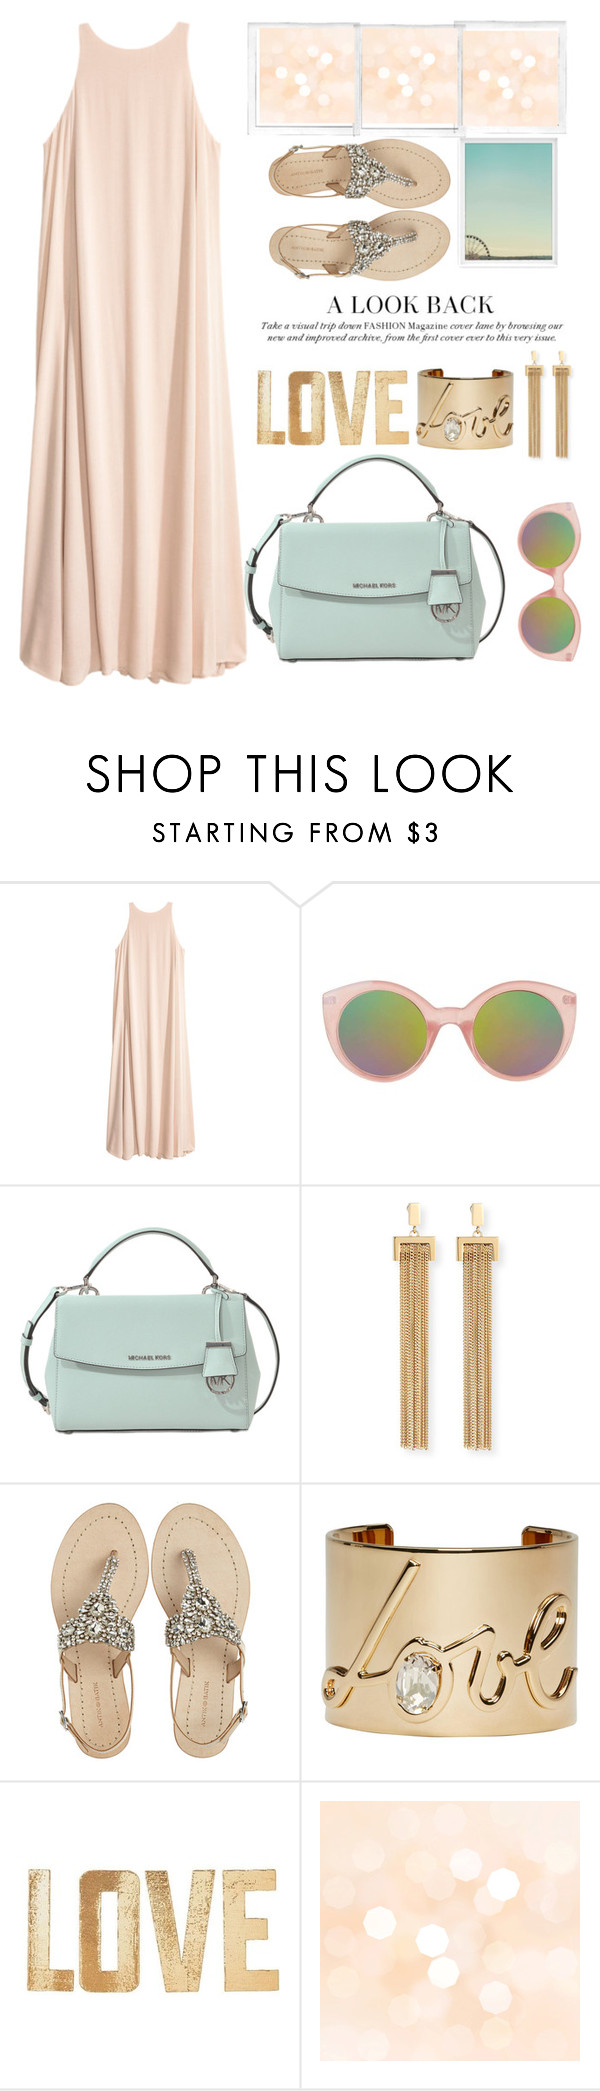 """""""love color pastel """" by licethfashion ❤ liked on Polyvore featuring Topshop, MICHAEL Michael Kors, Chloé, Antik Batik, Lanvin, PBteen and Polaroid"""